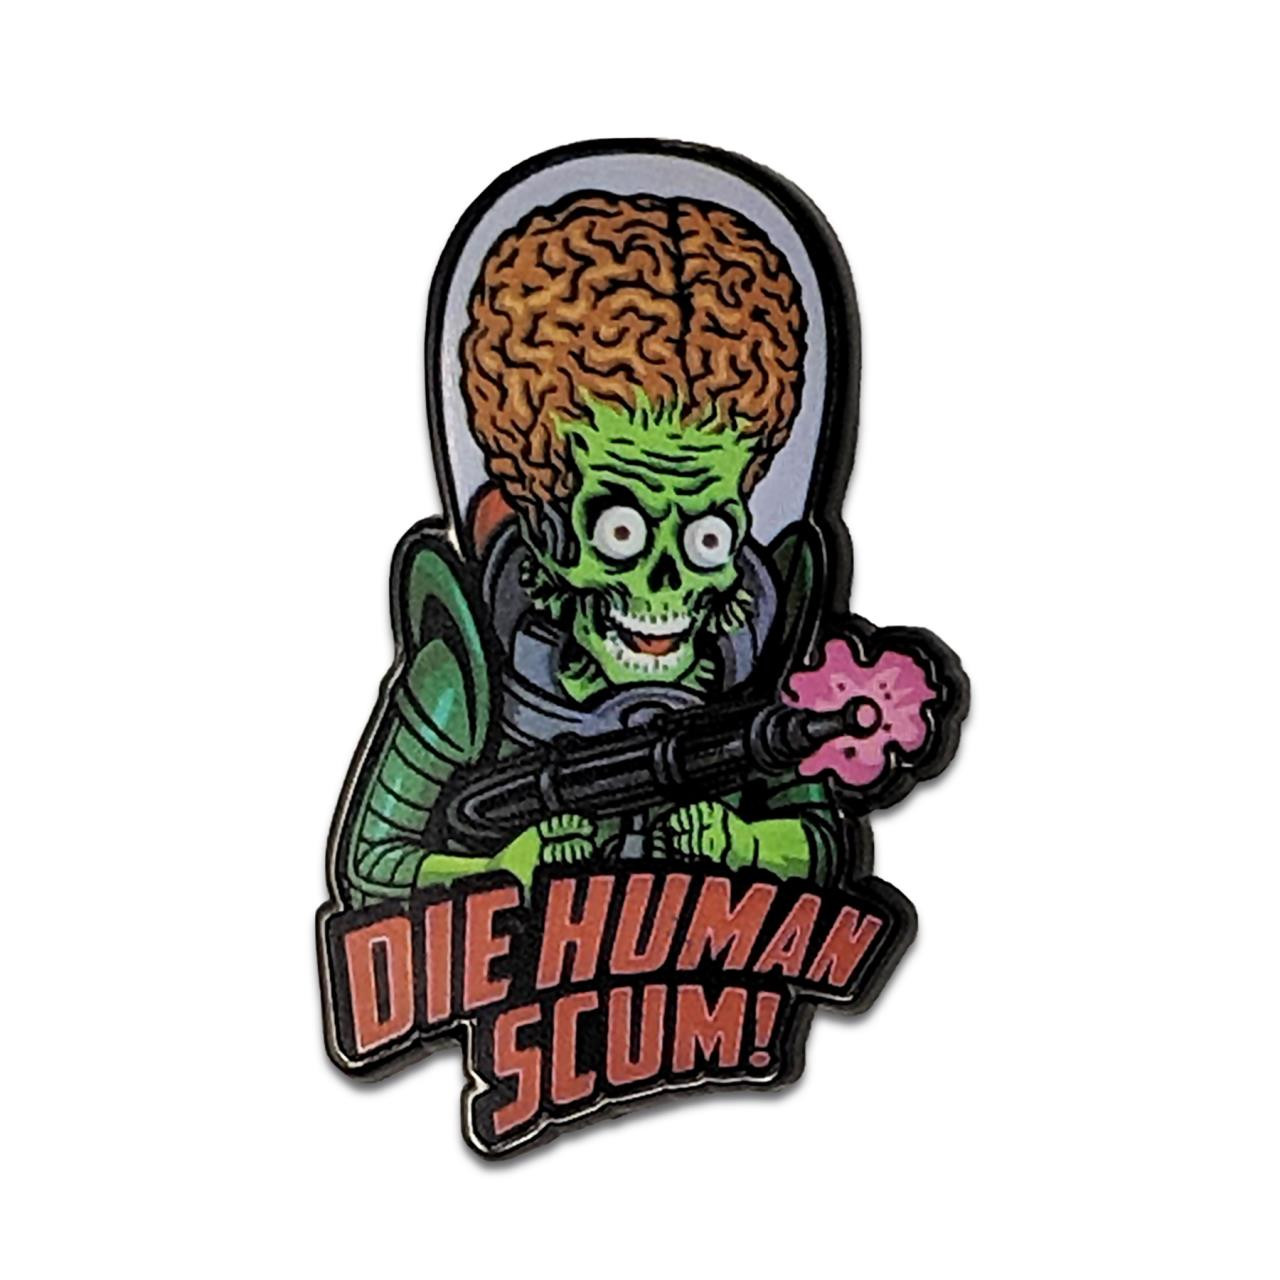 Mars Attacks Human Scum Pin* -